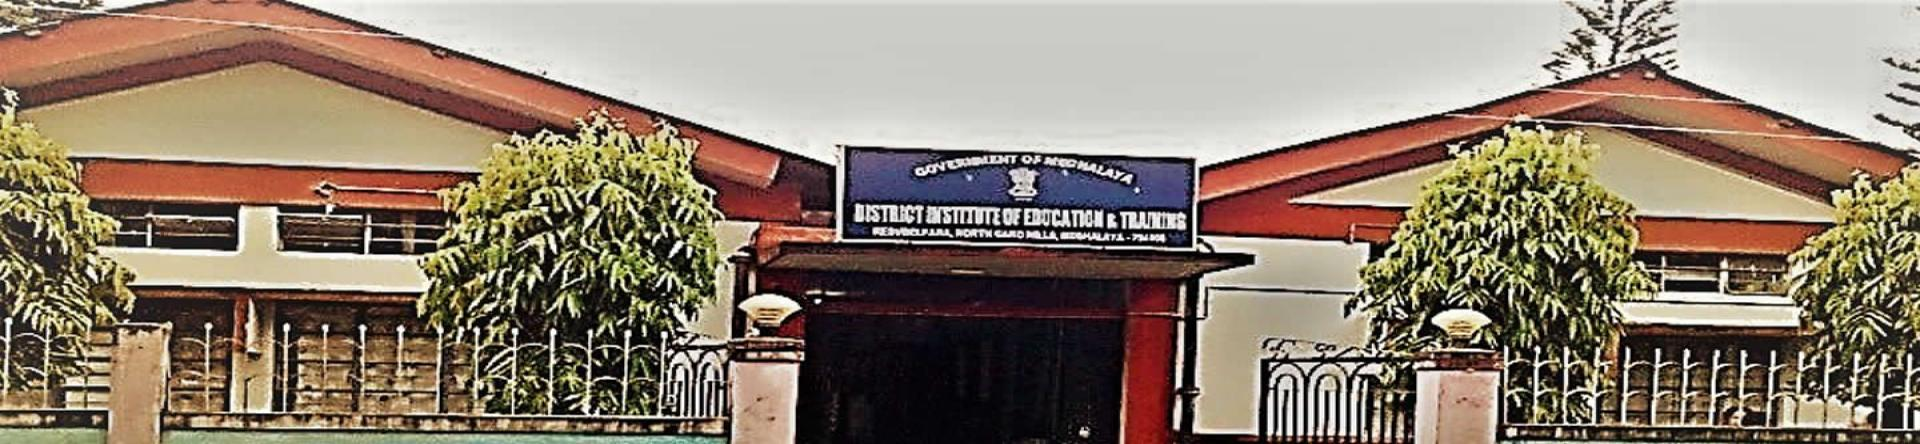 Official Website of District Institute Of Education And